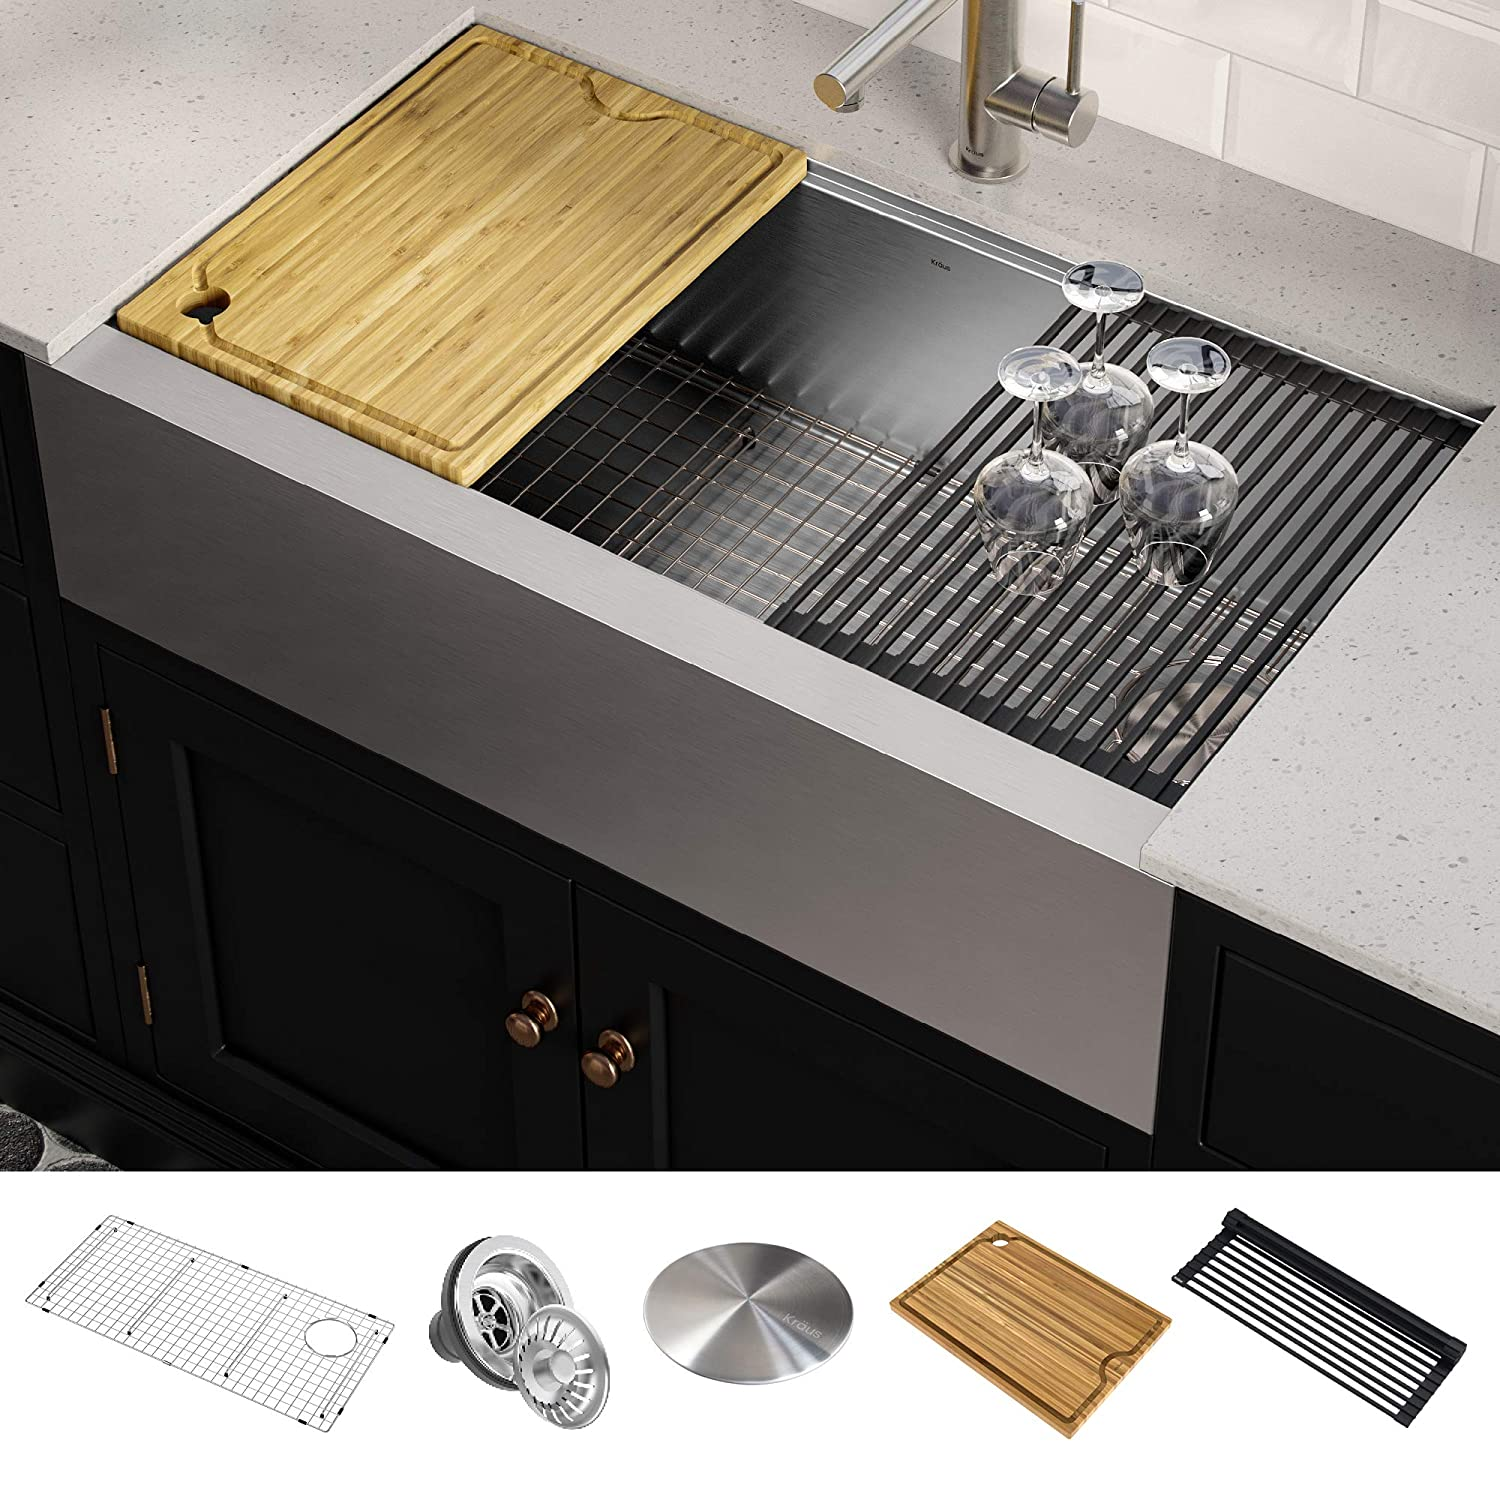 KRAUS KWF410-36 Kore Workstation 36-inch Farmhouse Flat Apron Front 16 Gauge Single Bowl Stainless Steel Kitchen Sink with Integrated Ledge and Accessories (Pack of 5)